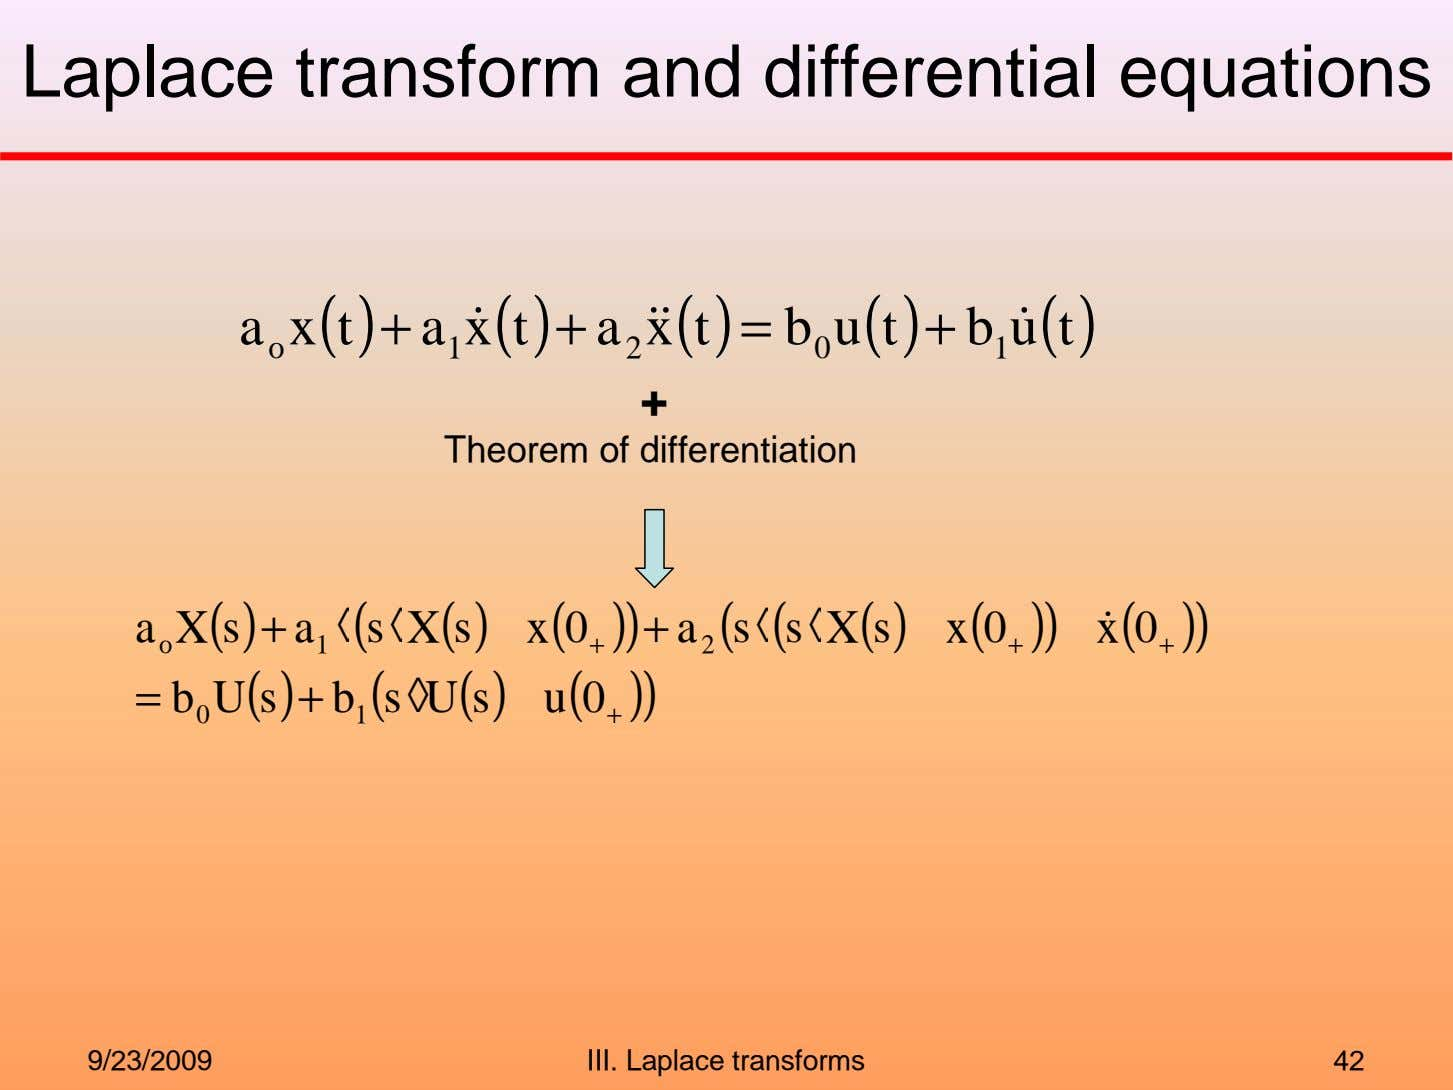 Laplace transform and differential equations a x(t) + a x(t) + a x(t) = b